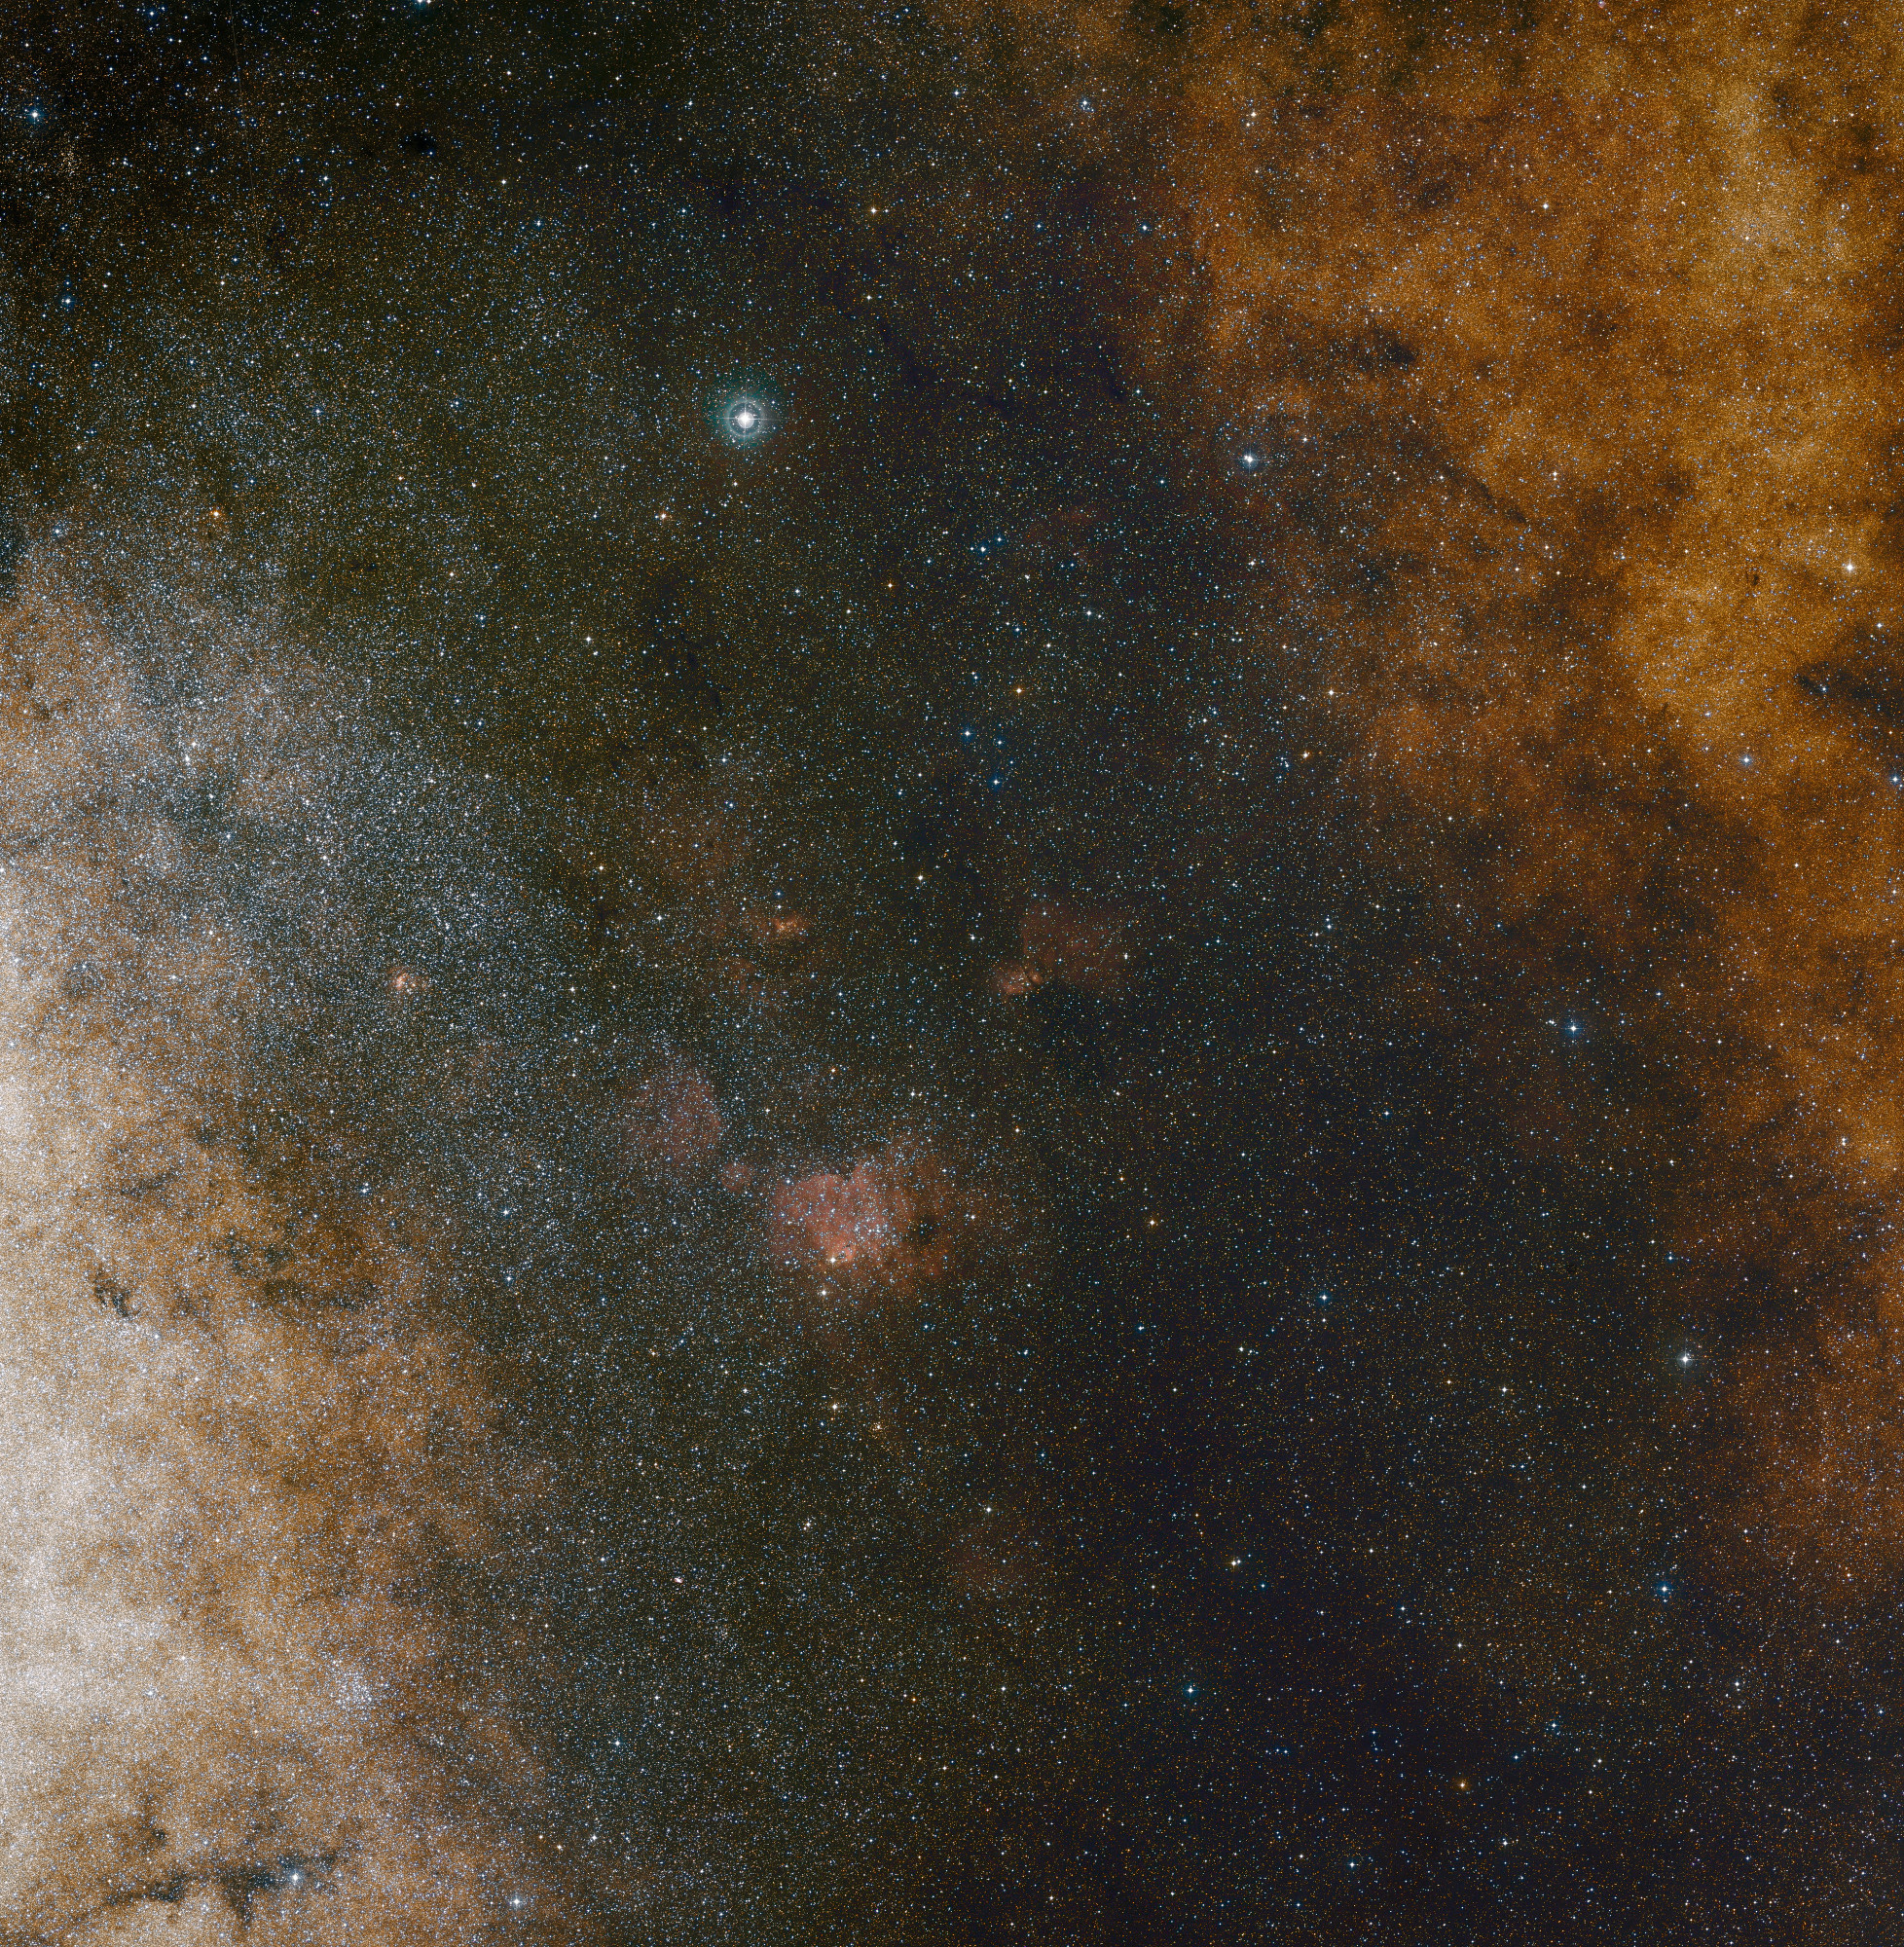 This visible light wide-field view shows the rich star clouds in the constellation of Sagittarius (the Archer) in the direction of the centre of our Milky Way galaxy. The entire image is filled with vast numbers of stars — but far more remain hidden behind clouds of dust and are only revealed in infrared images. This view was created from photographs in red and blue light and forming part of the Digitised Sky Survey 2. The field of view is approximately 3.5 degrees x 3.6 degrees. Image credit: ESO and DSS 2. Acknowledgment: Davide De Martin and S. Guisard.